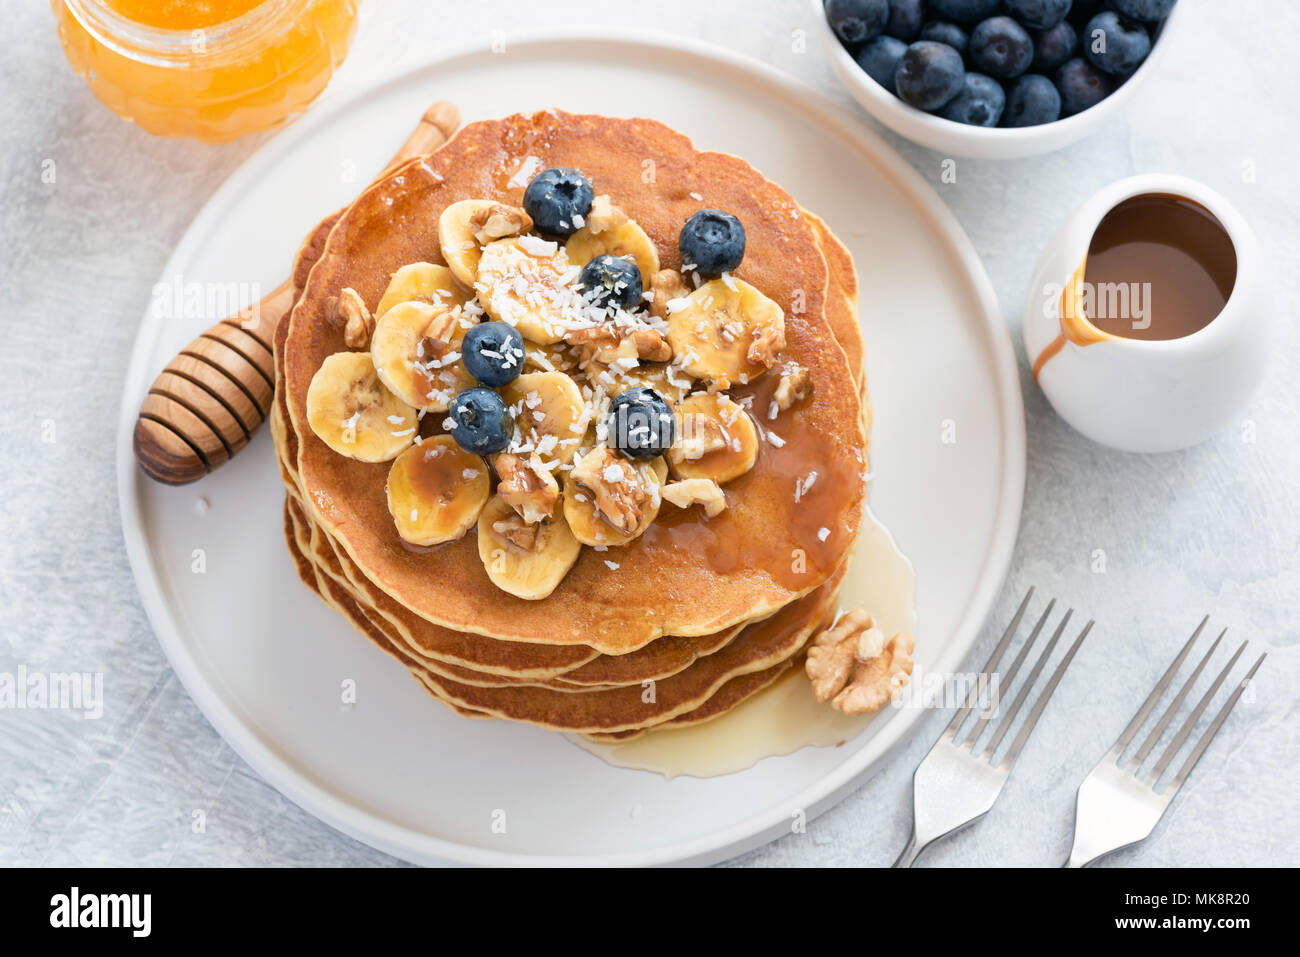 Pancakes with blueberries, banana, walnuts and honey on white plate. Stack of tasty pancakes with caramel syrup. Pancakes Breakfast with Honey - Stock Image